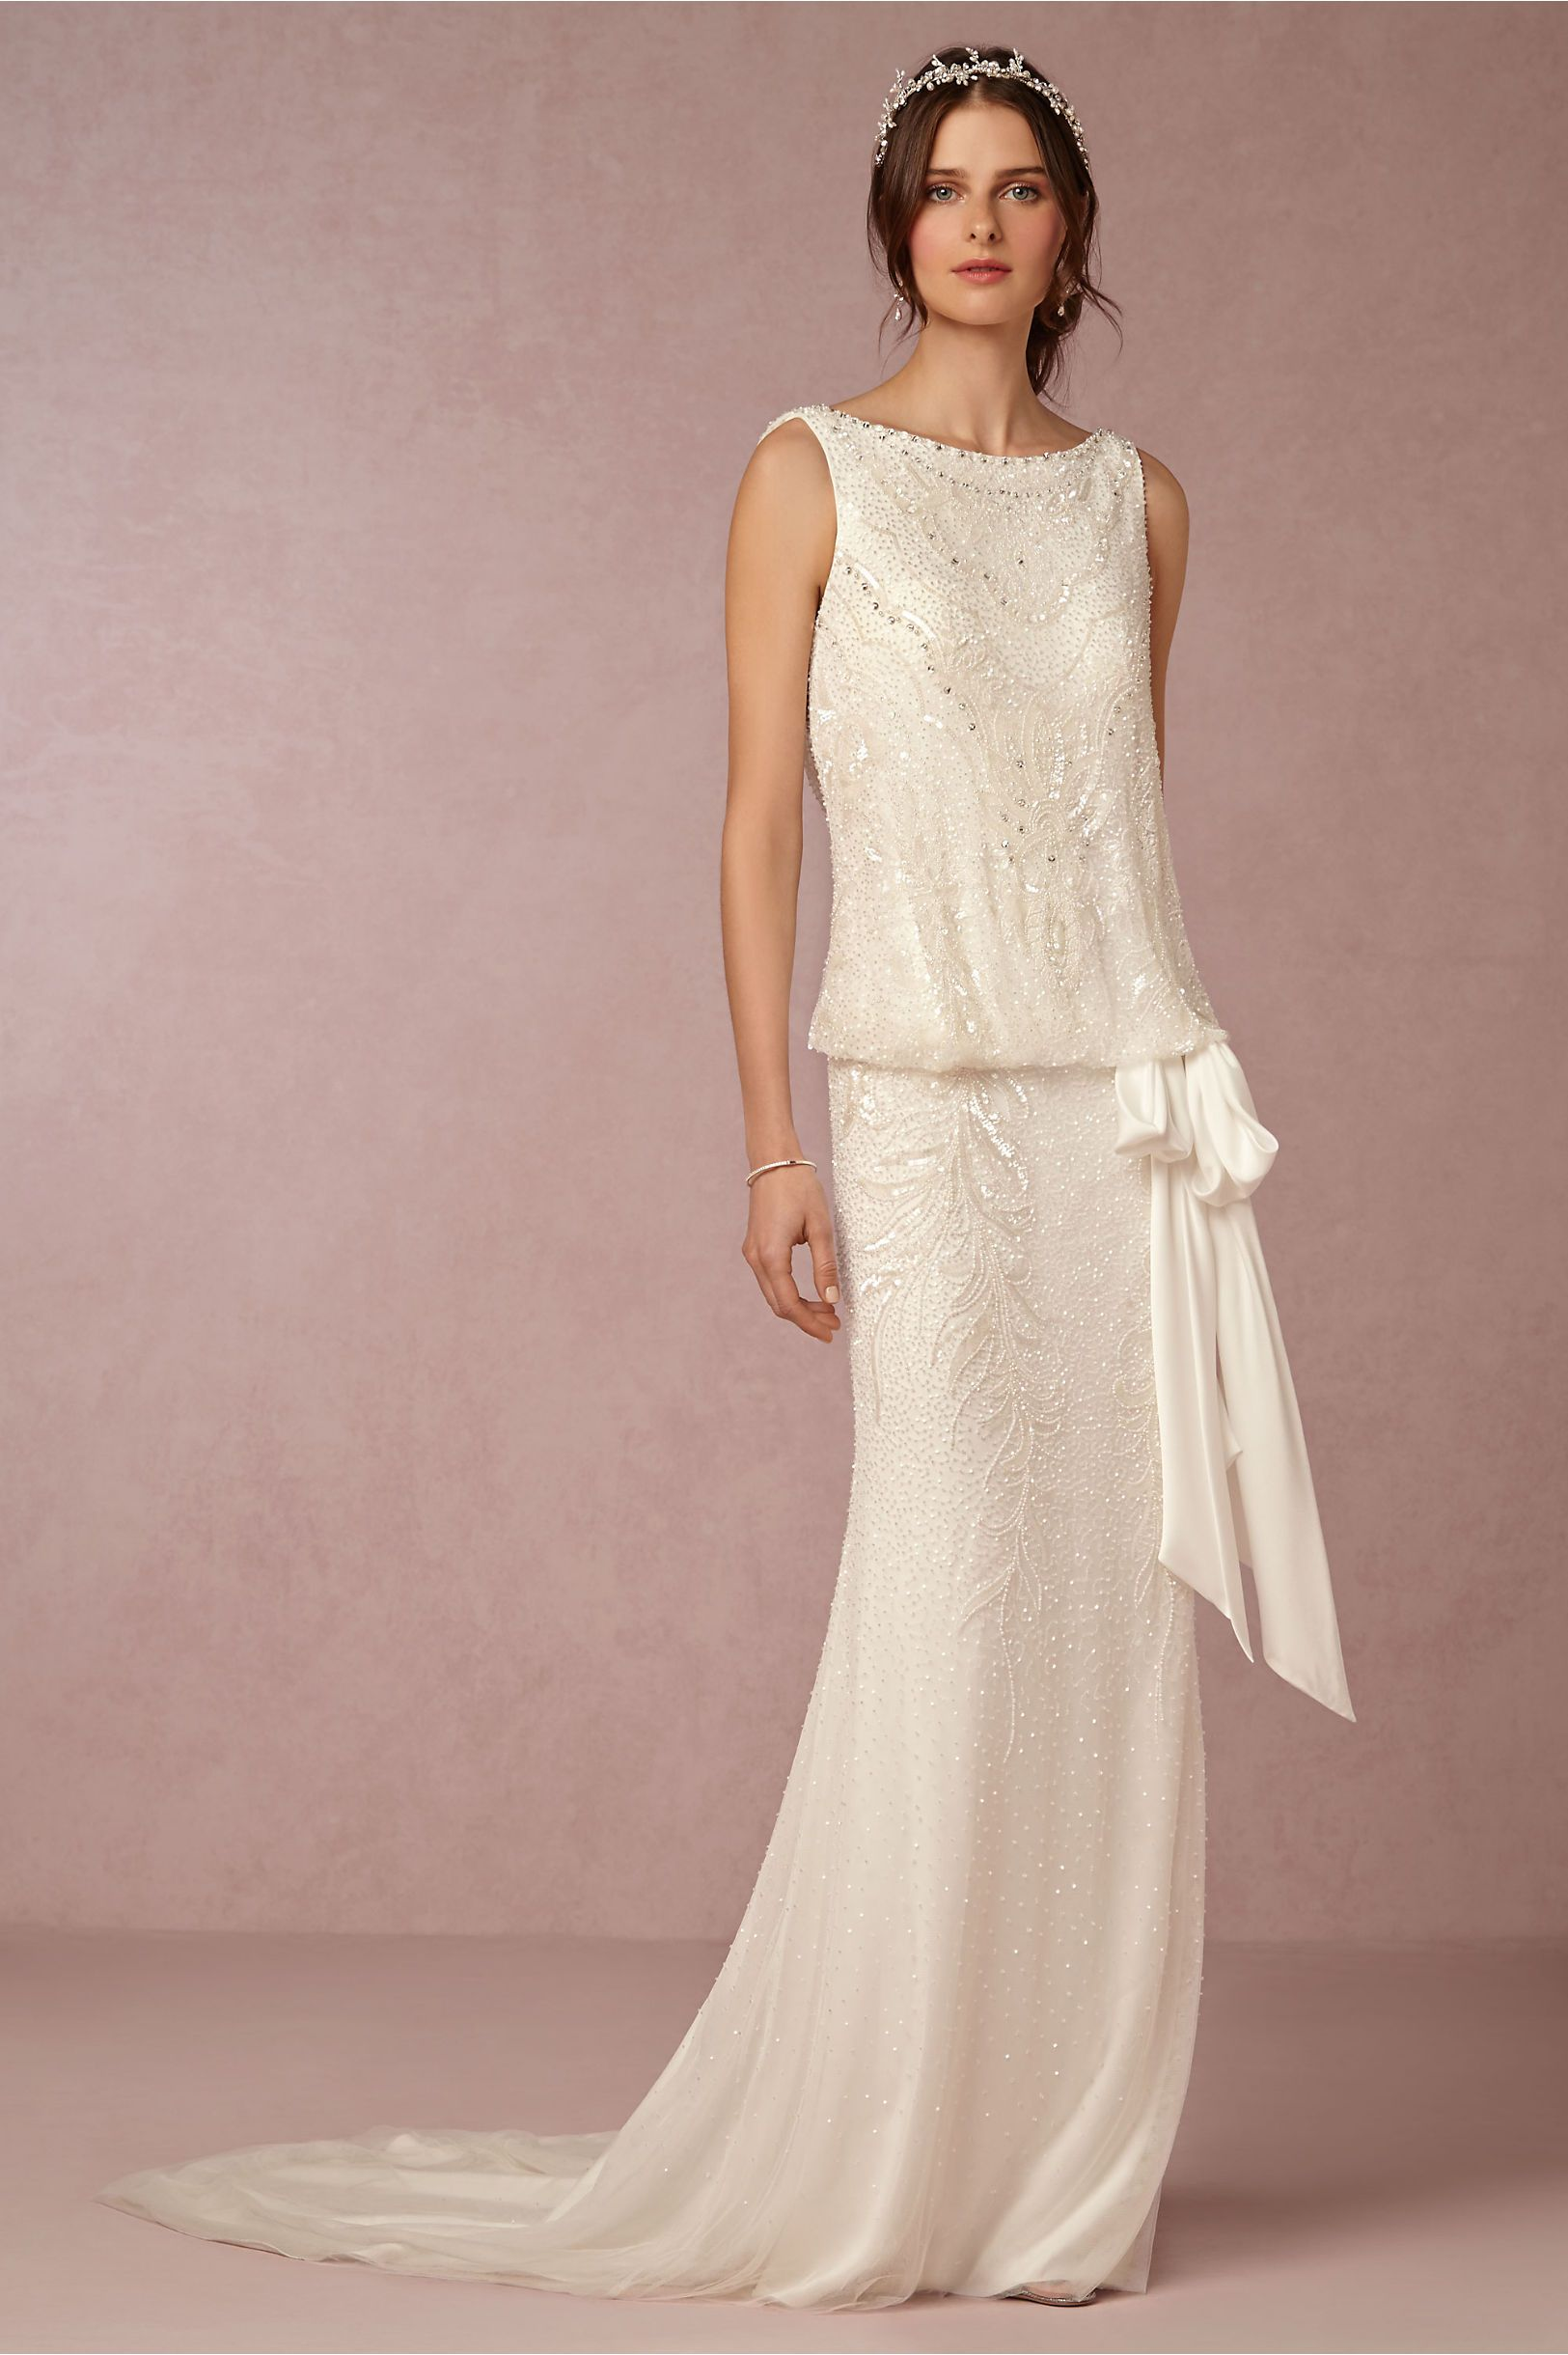 Arabella Gown in Bride Wedding Dresses at BHLDN | I can dream ...